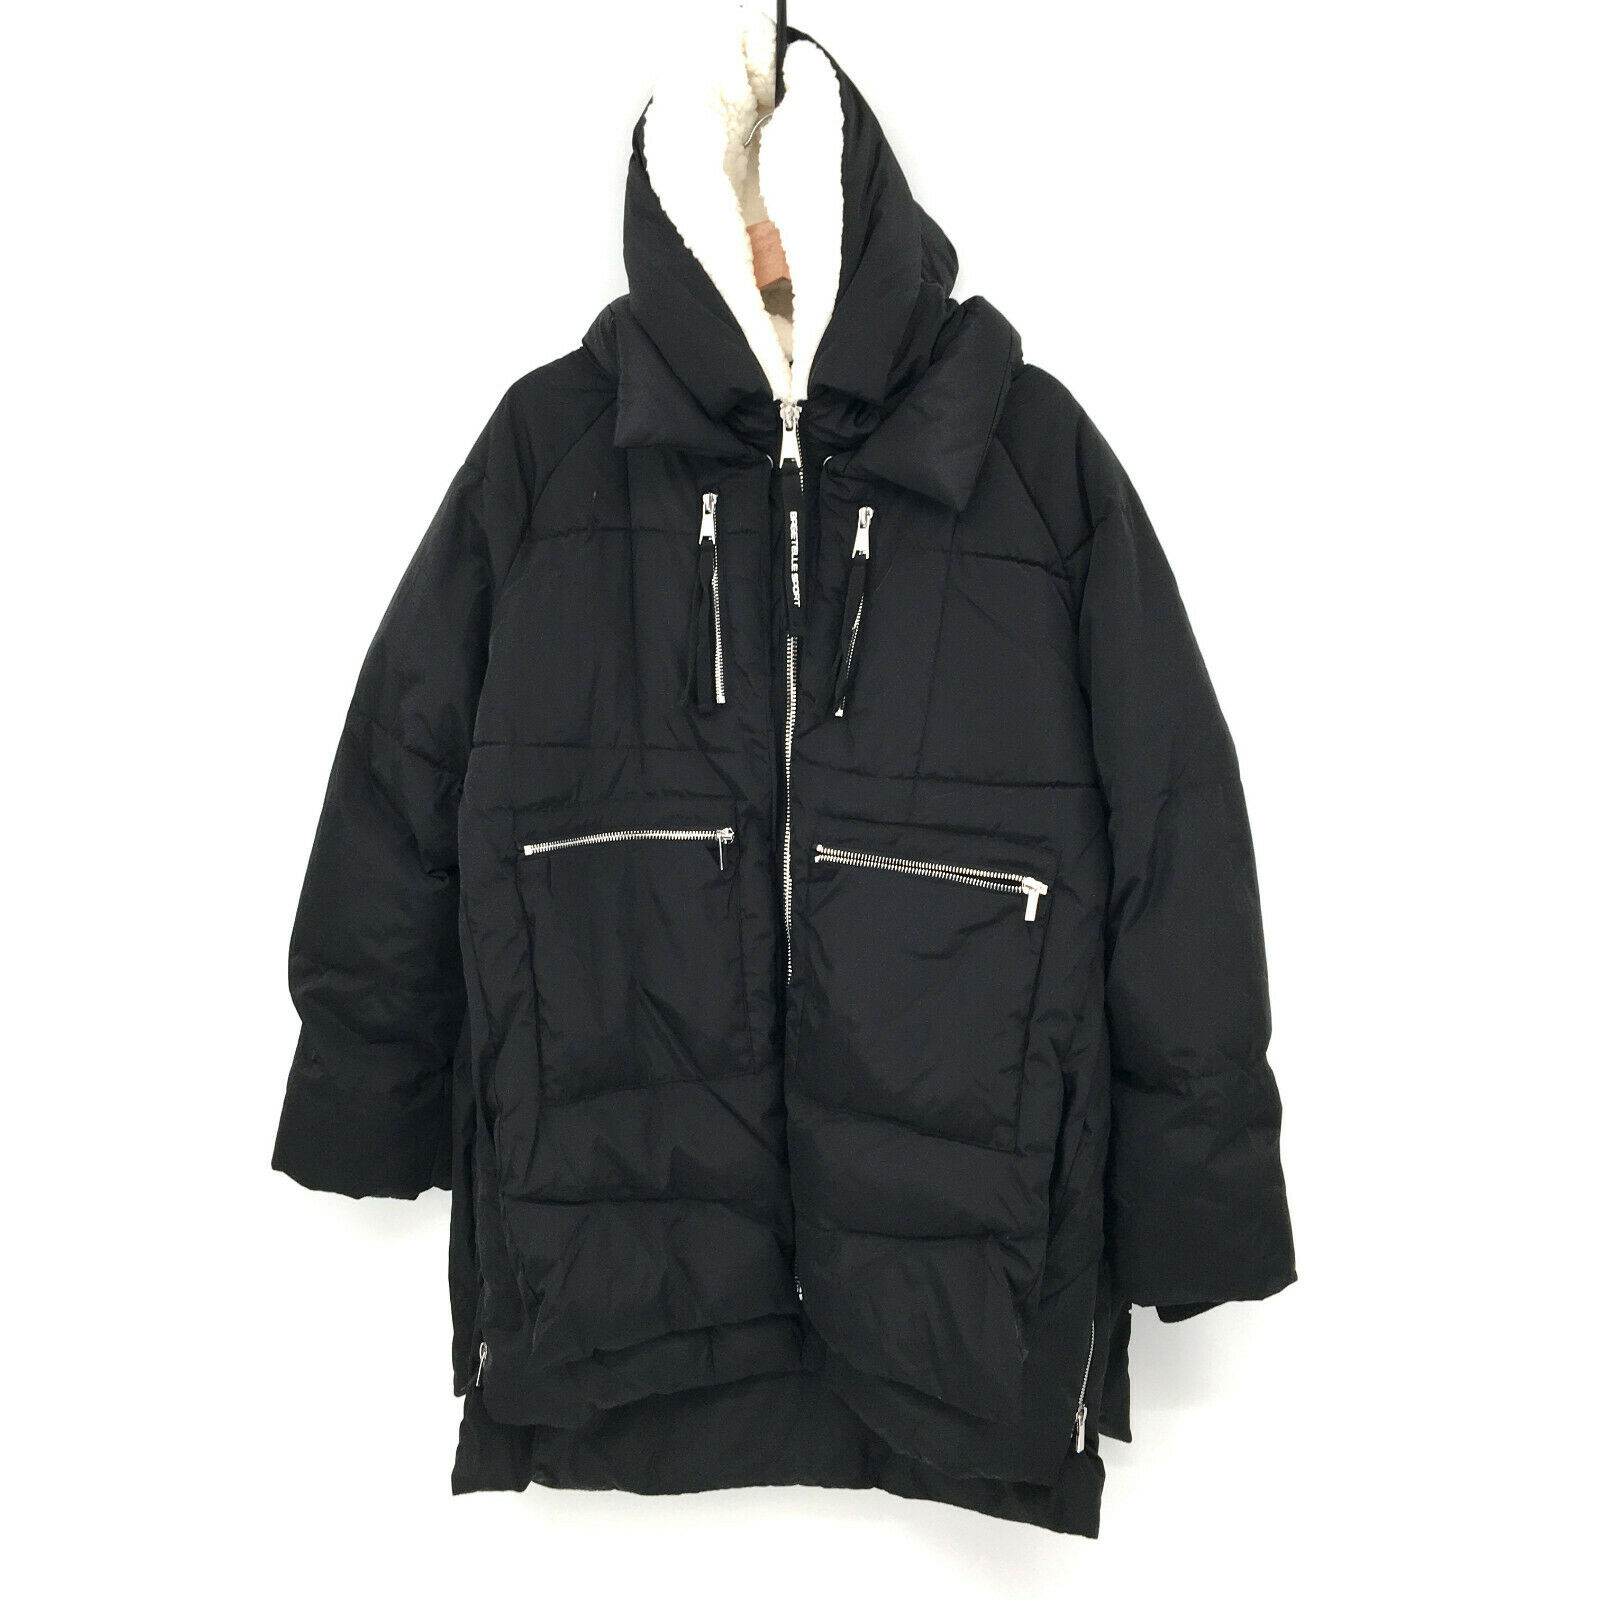 NWT Bagatelle sport Faux Shearling Lined Parka Jacket black puffer quilt long L